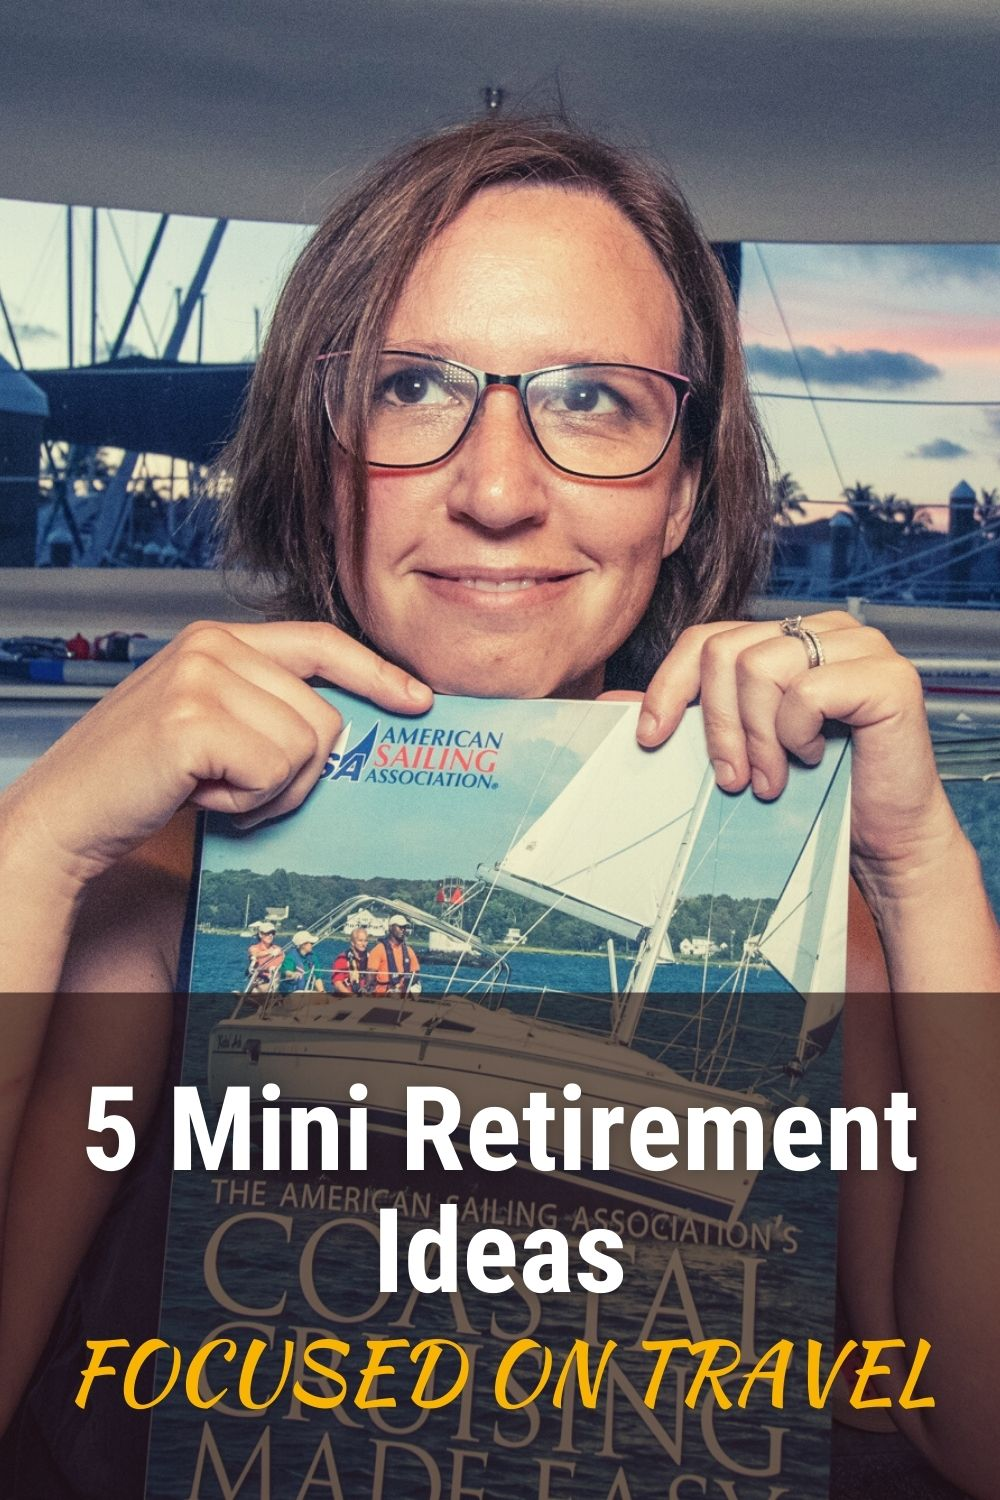 FIAR: 5 Mini Retirement Ideas Focused on Travel